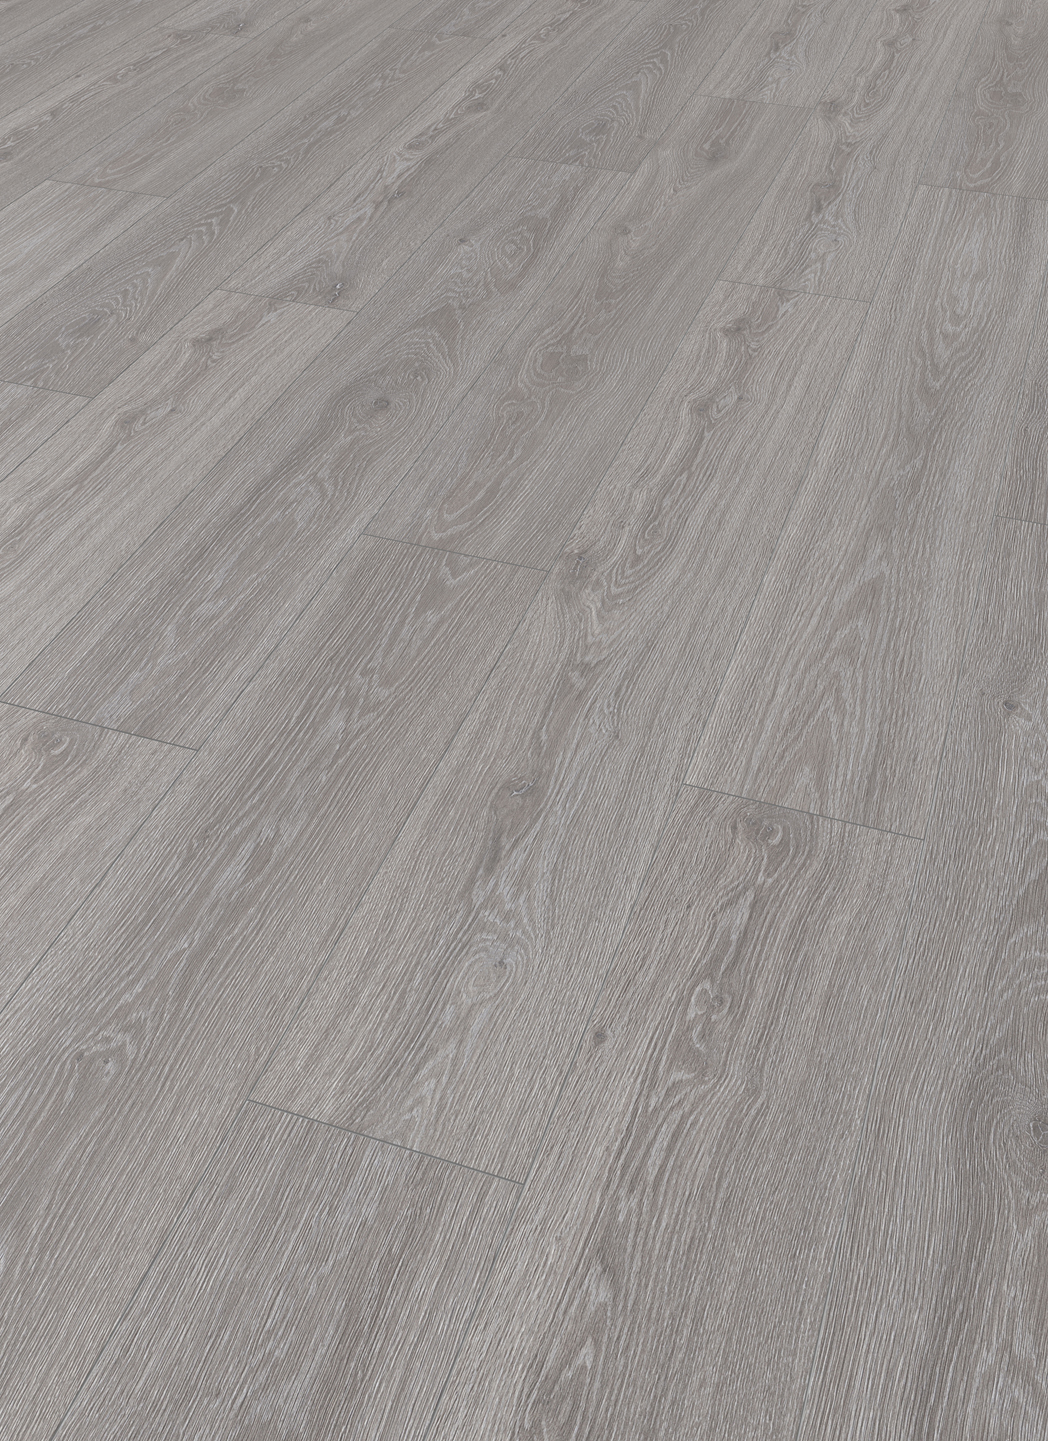 avatara oak blue grey man-made wood floor